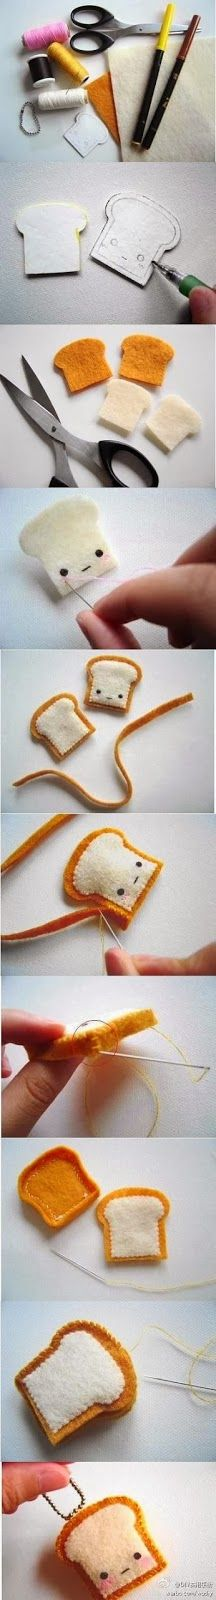 DIY Cute Little Bread Guys. Ive pinned this before but I dont remember if it had a tutorial Please Follow Us @ http://diygods.com/  #diy